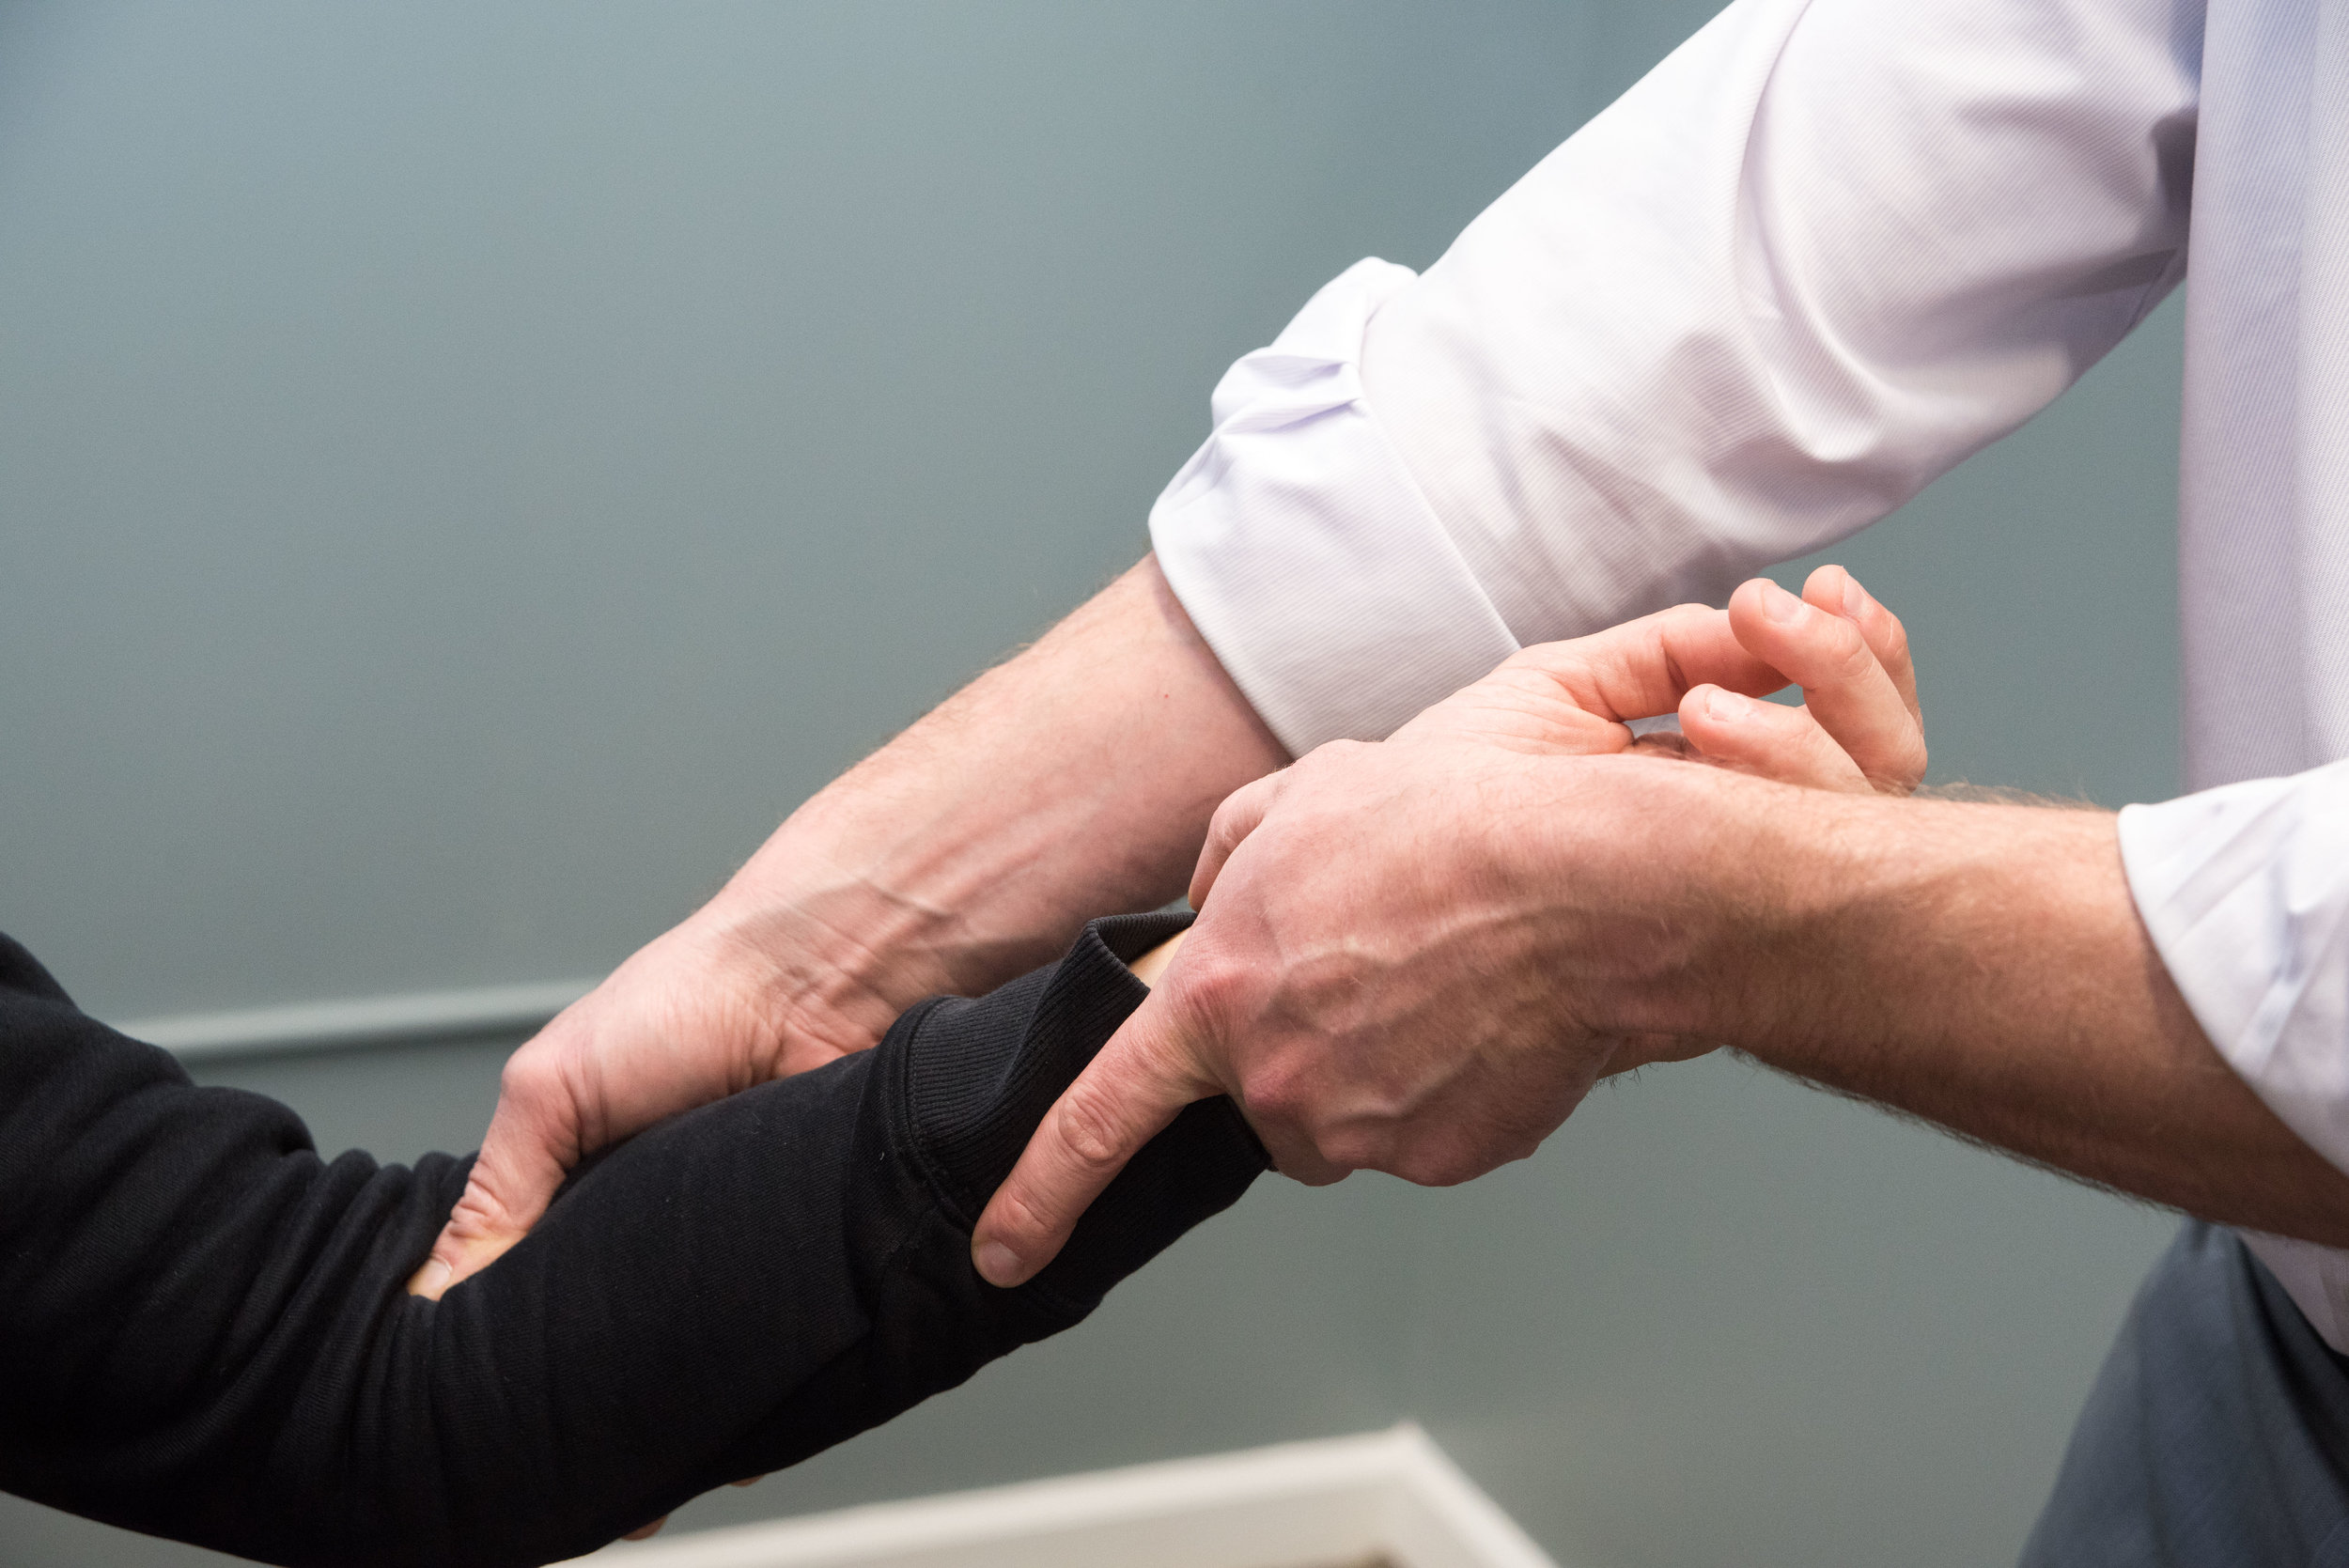 Chiropractic adjustment to the wrist.